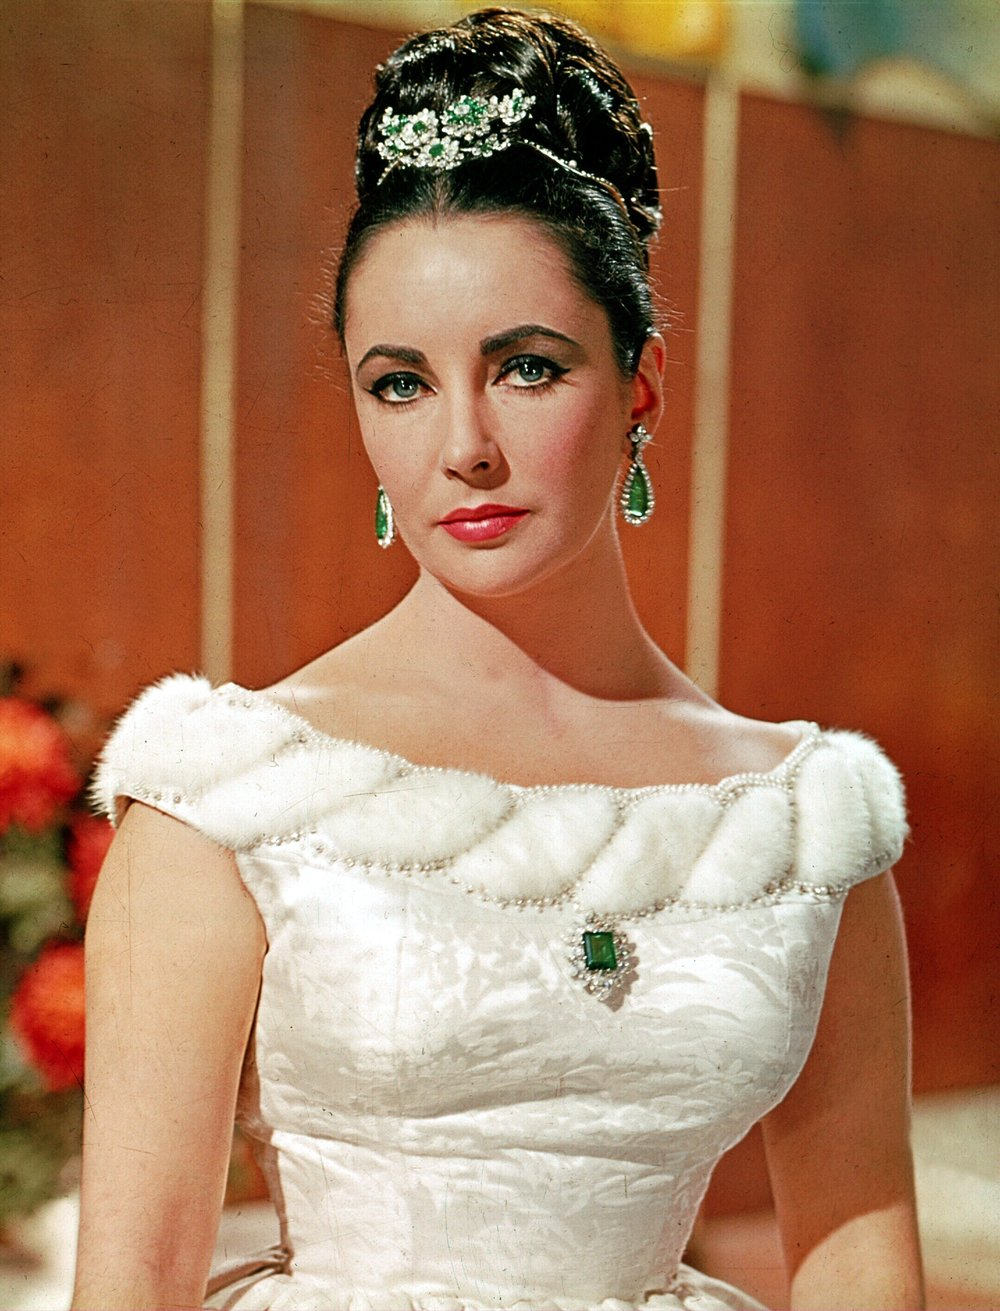 The V.I.P.s (1963)Directed by Anthony Asquith Shown: Elizabeth Taylor